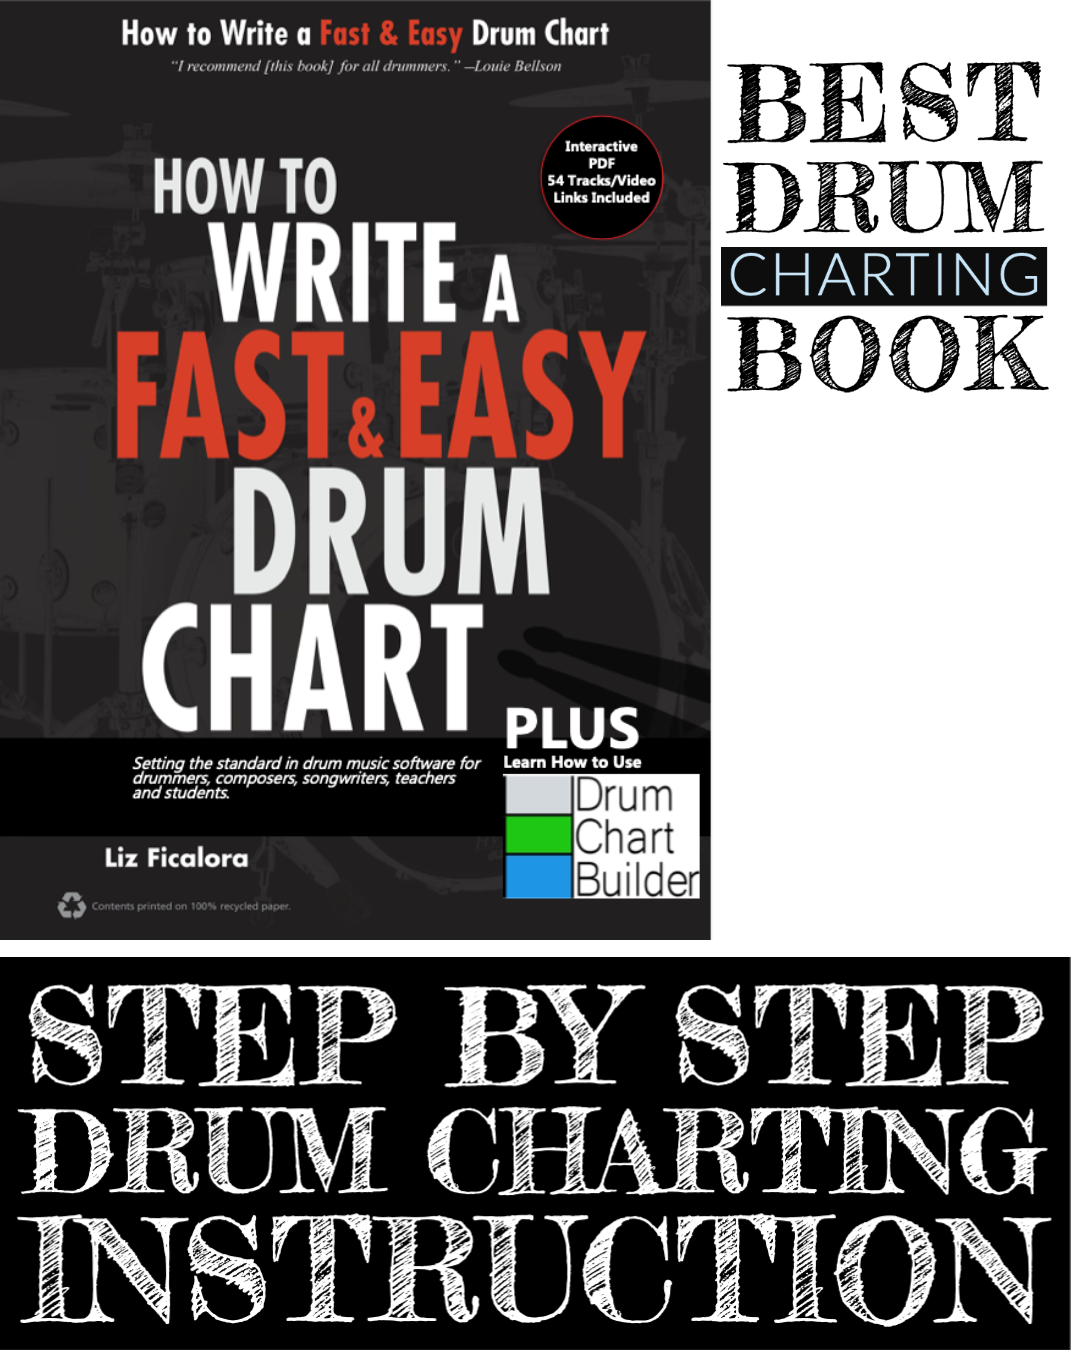 BEST DRUM CHARTING BOOK DCB SUPPORT PAGE